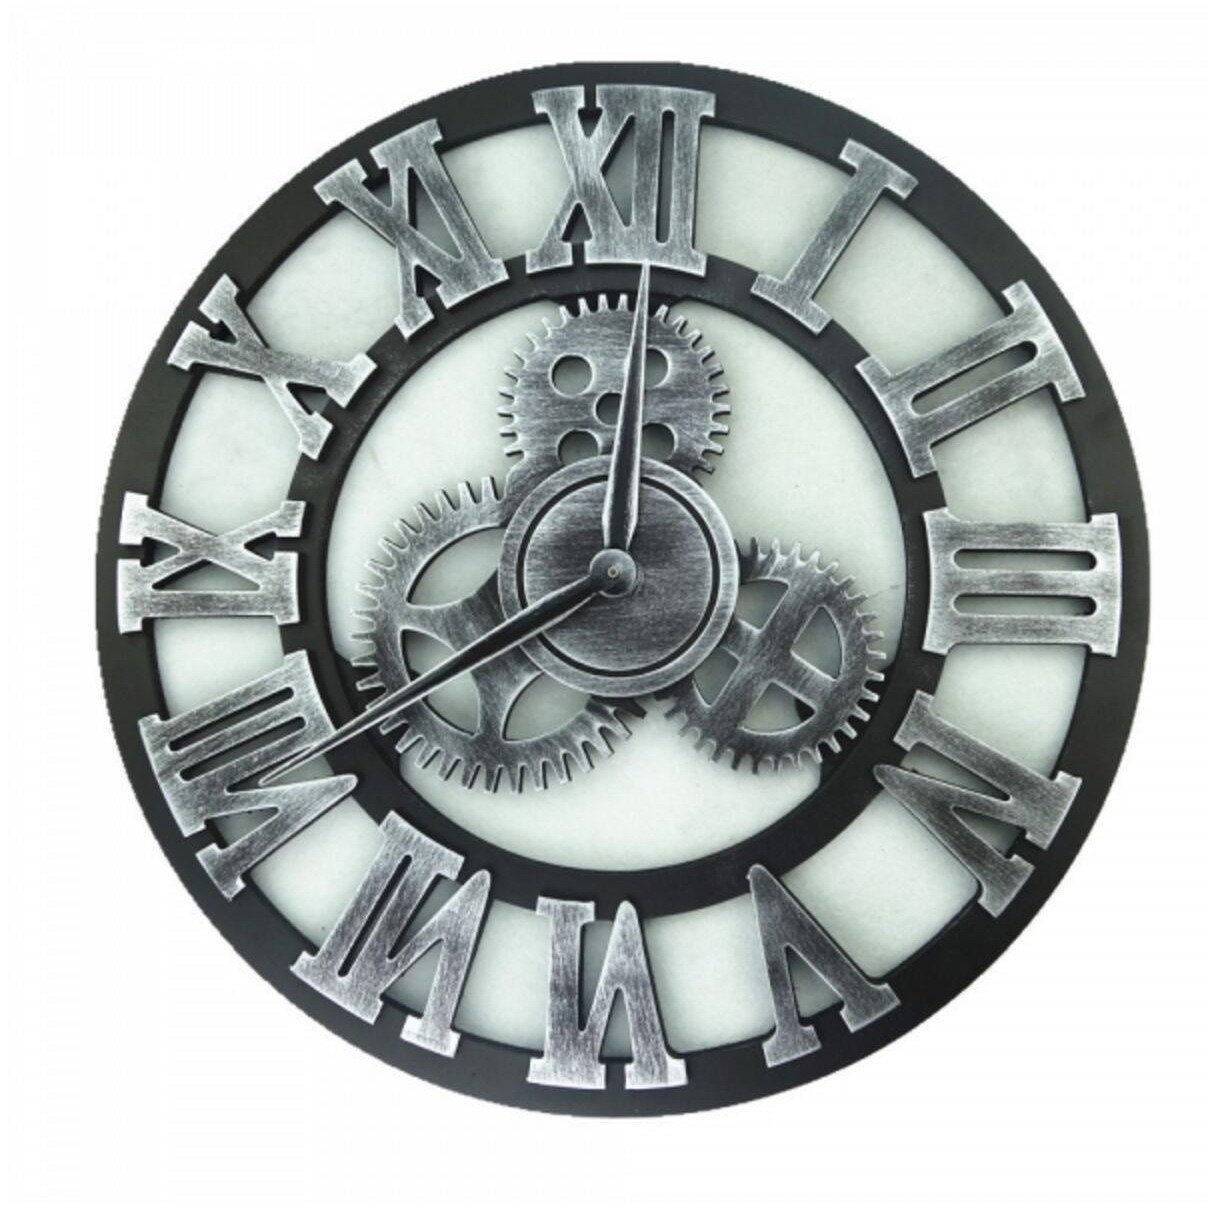 MODE HOME 16'' 3D Vintage Wooden Gear Wall Clock Decorative Big Size Kitchen Wall Clock